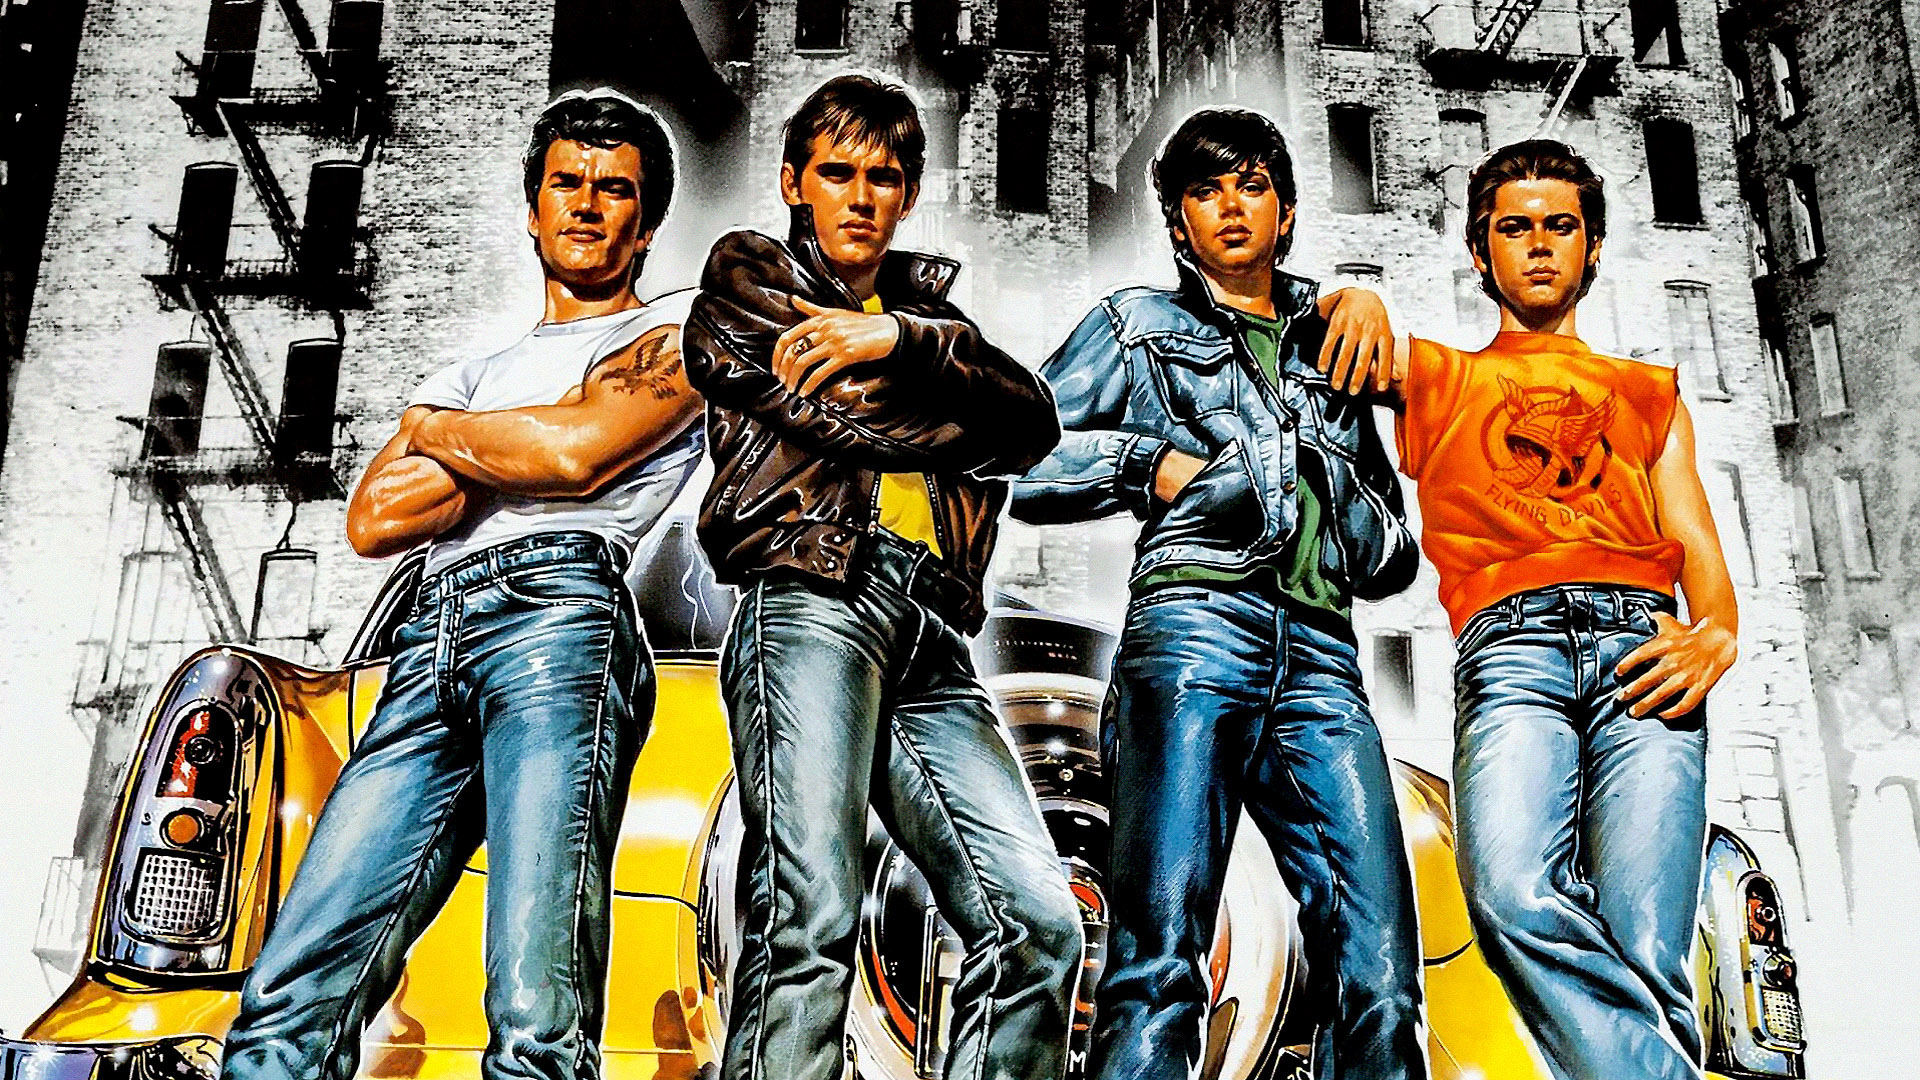 The Outsiders Image   Outsiders Cool Wallpaper Backgrounds 1920x1080